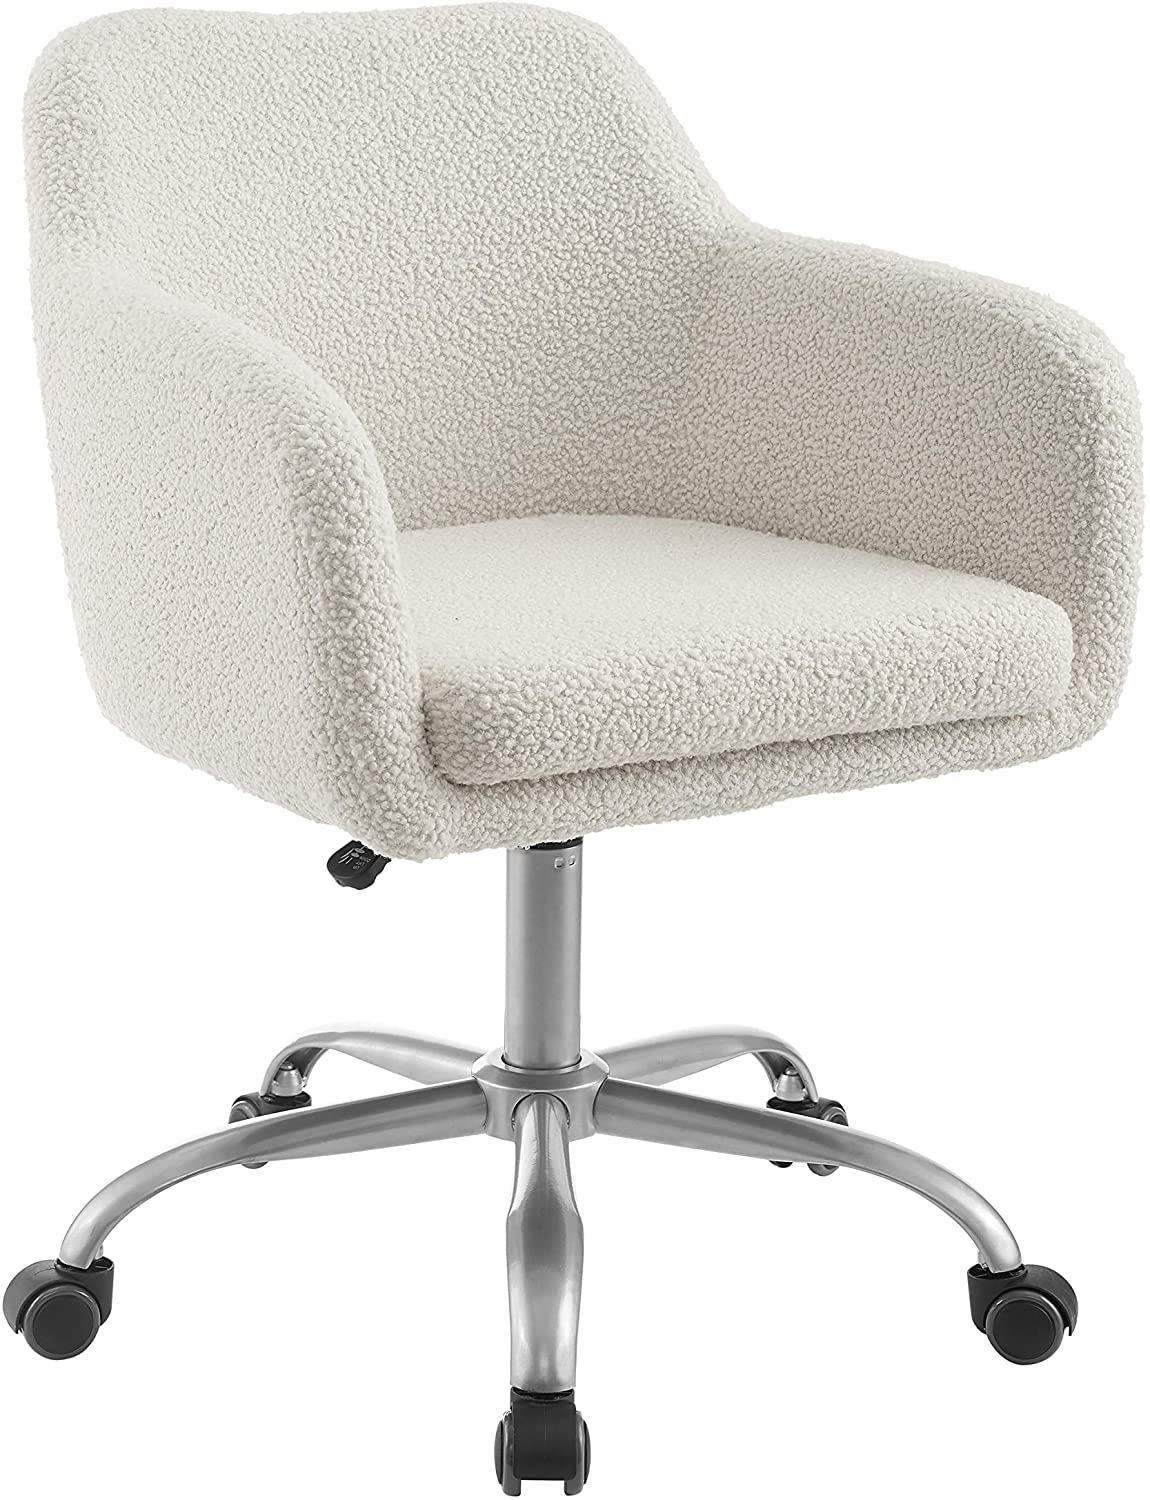 Linon Home Decor Products Linon Brooklyn Sherpa Office Chair, Ivory